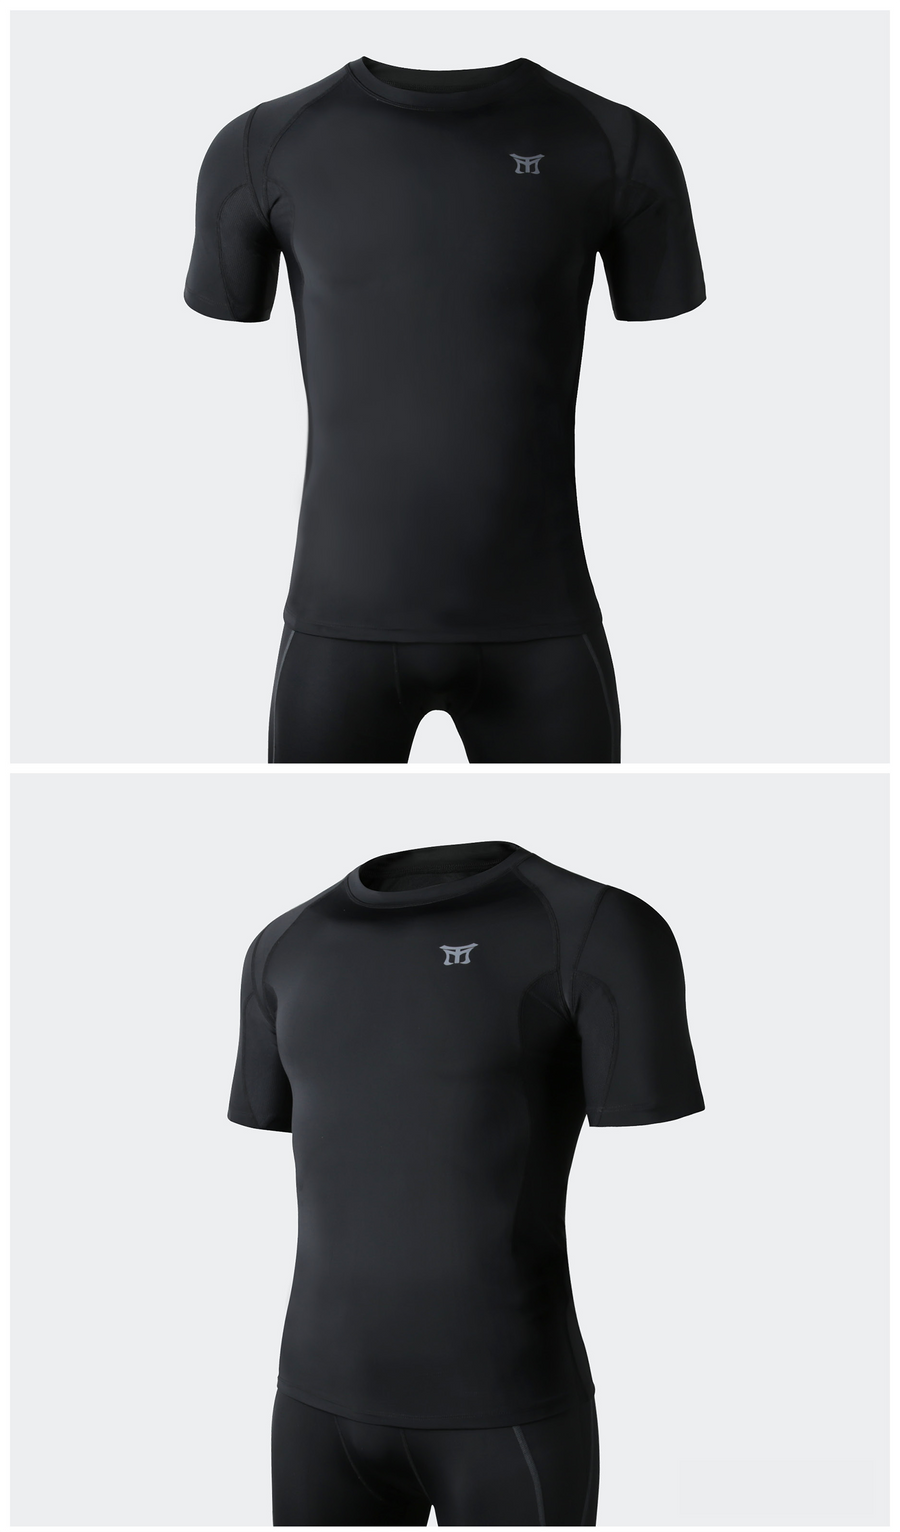 MOOTO Rash Guard Shirt